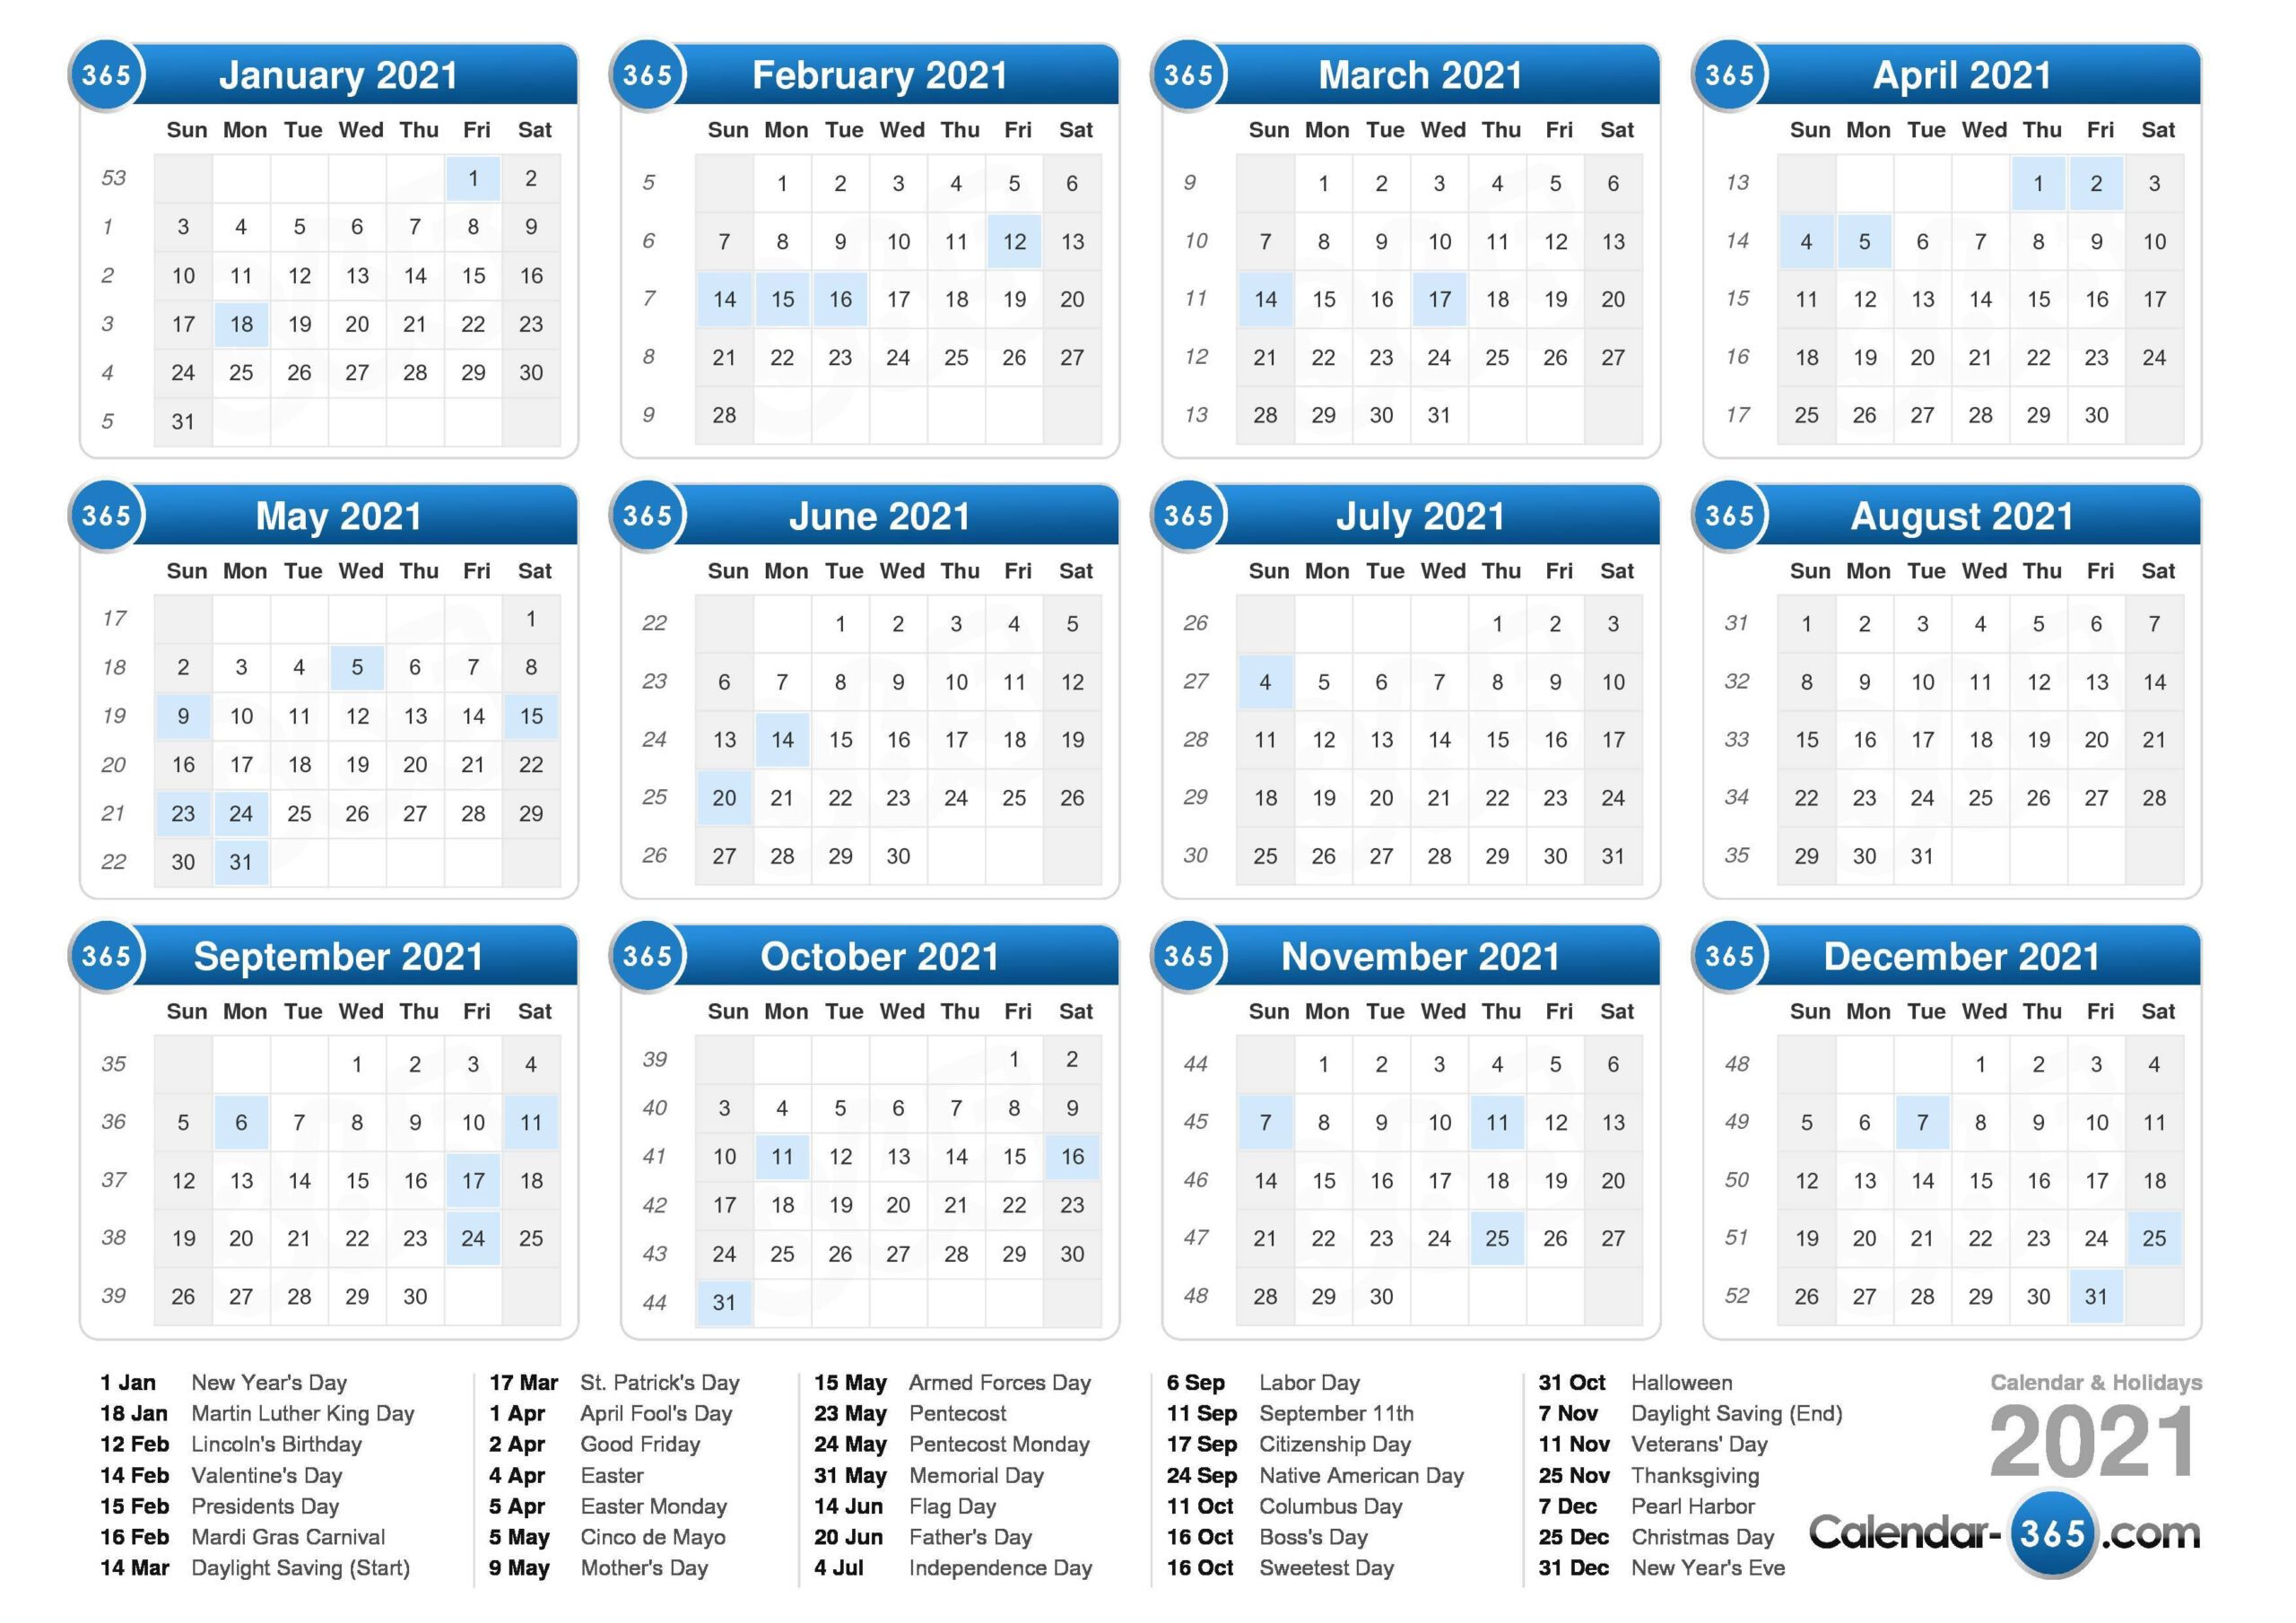 2021 Calendar-Free Print 2021 Calendars Without Downloading